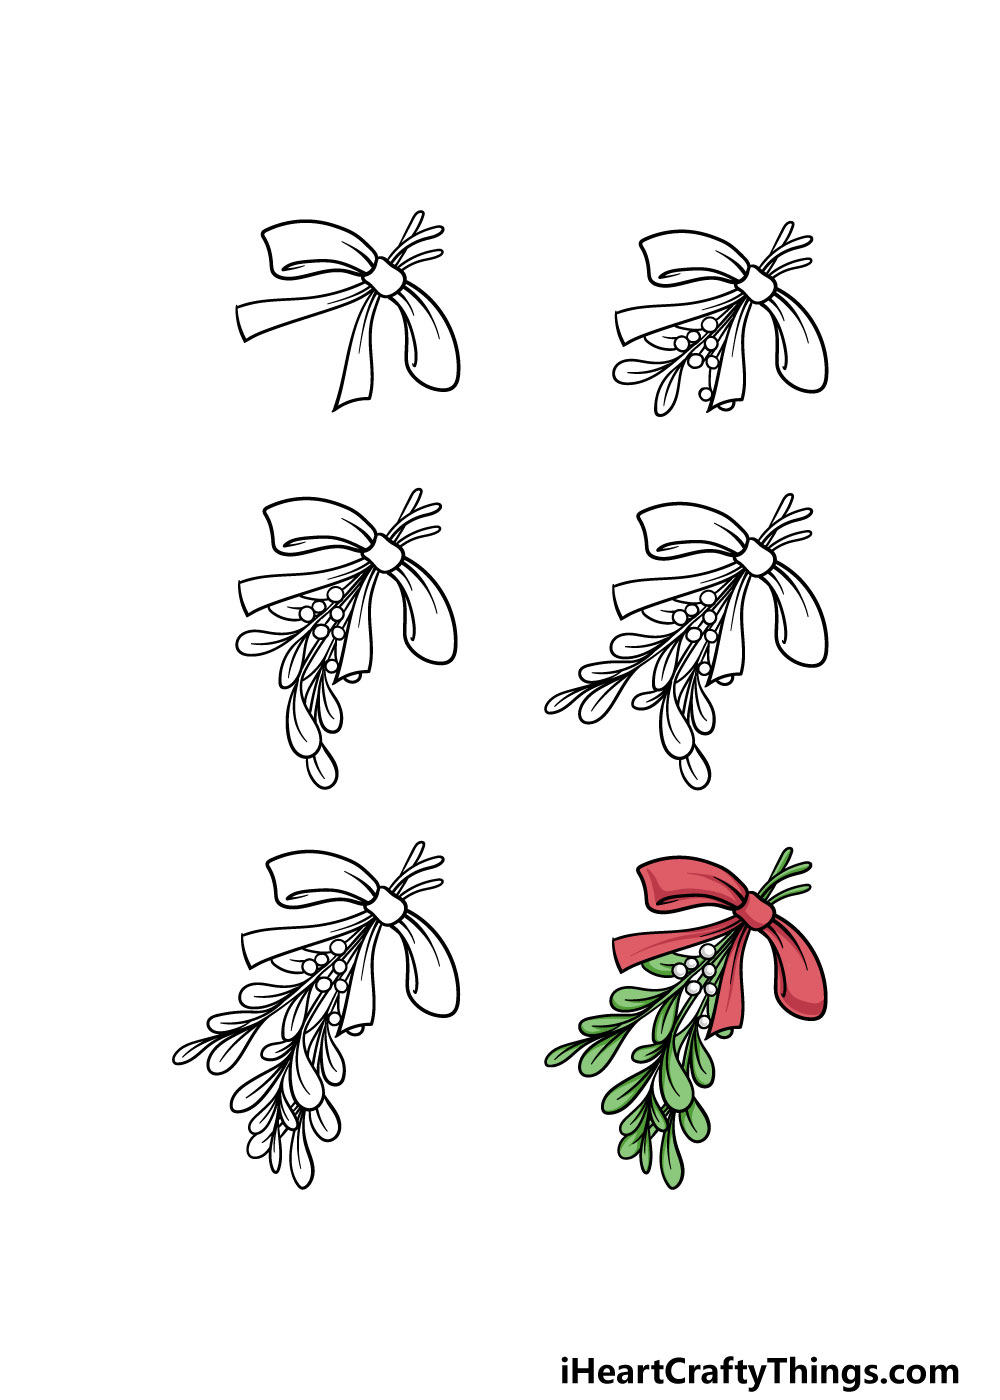 how to draw a mistletoe in 6 steps